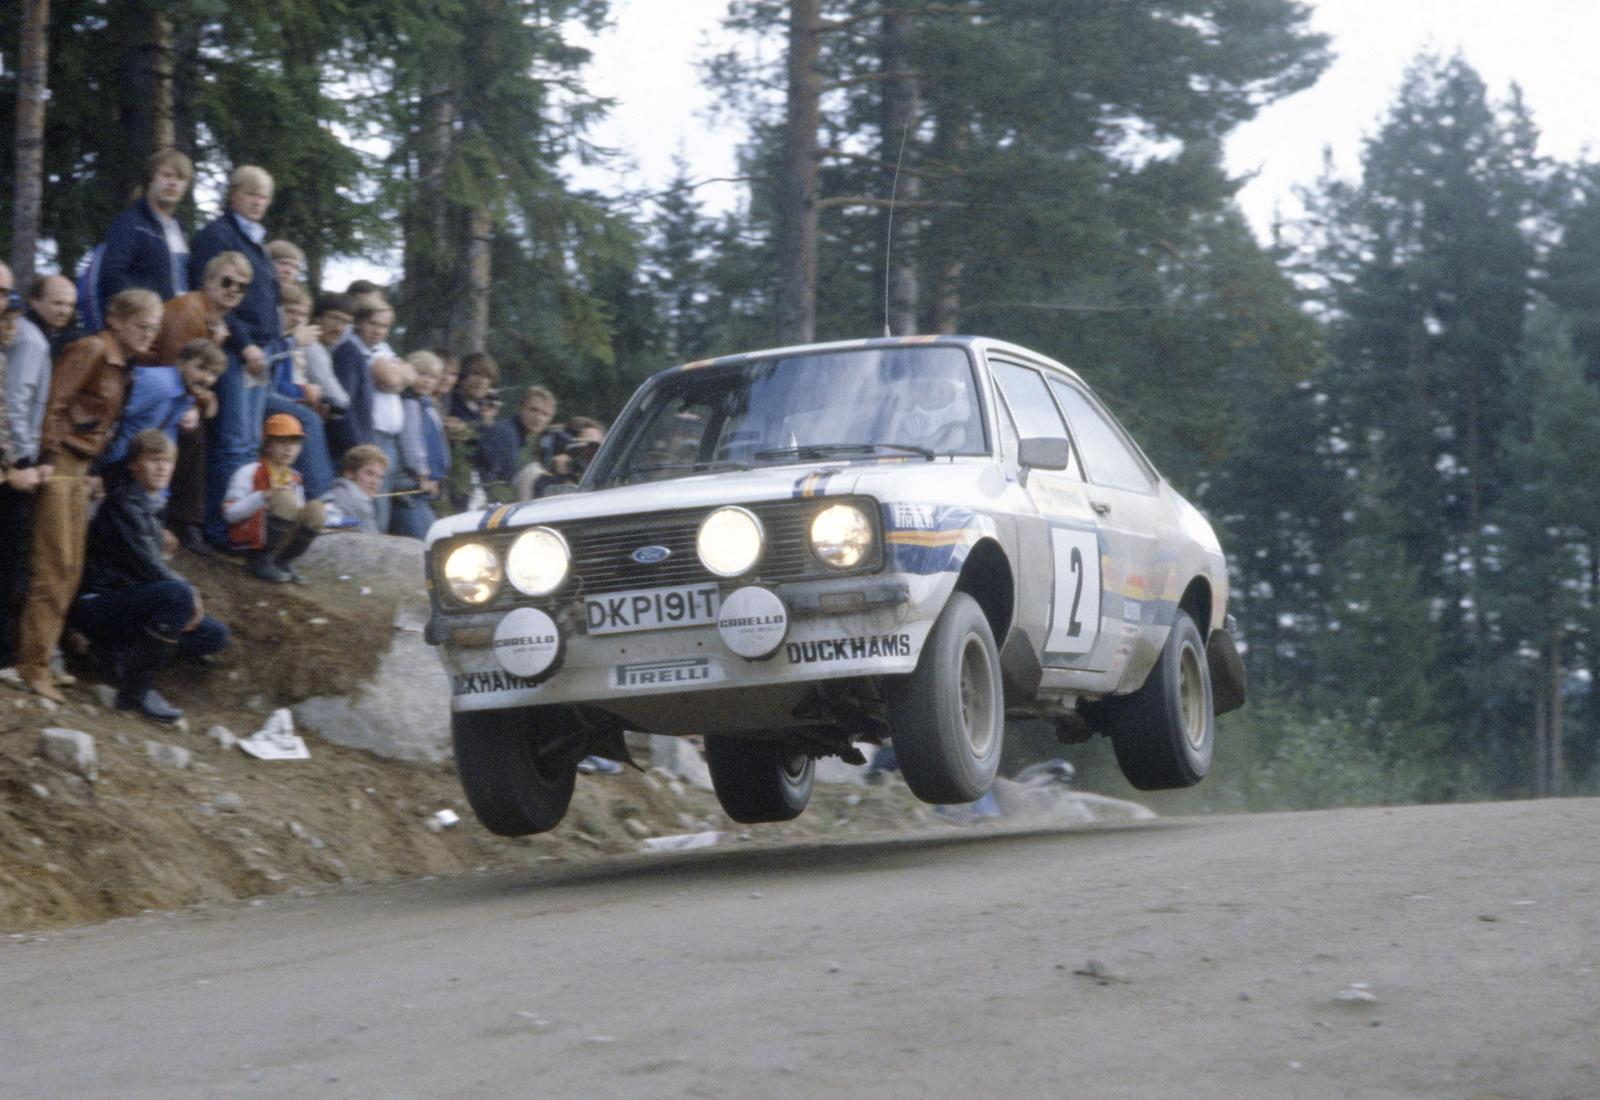 Former rally man David Richards to talk safety at Autosport show